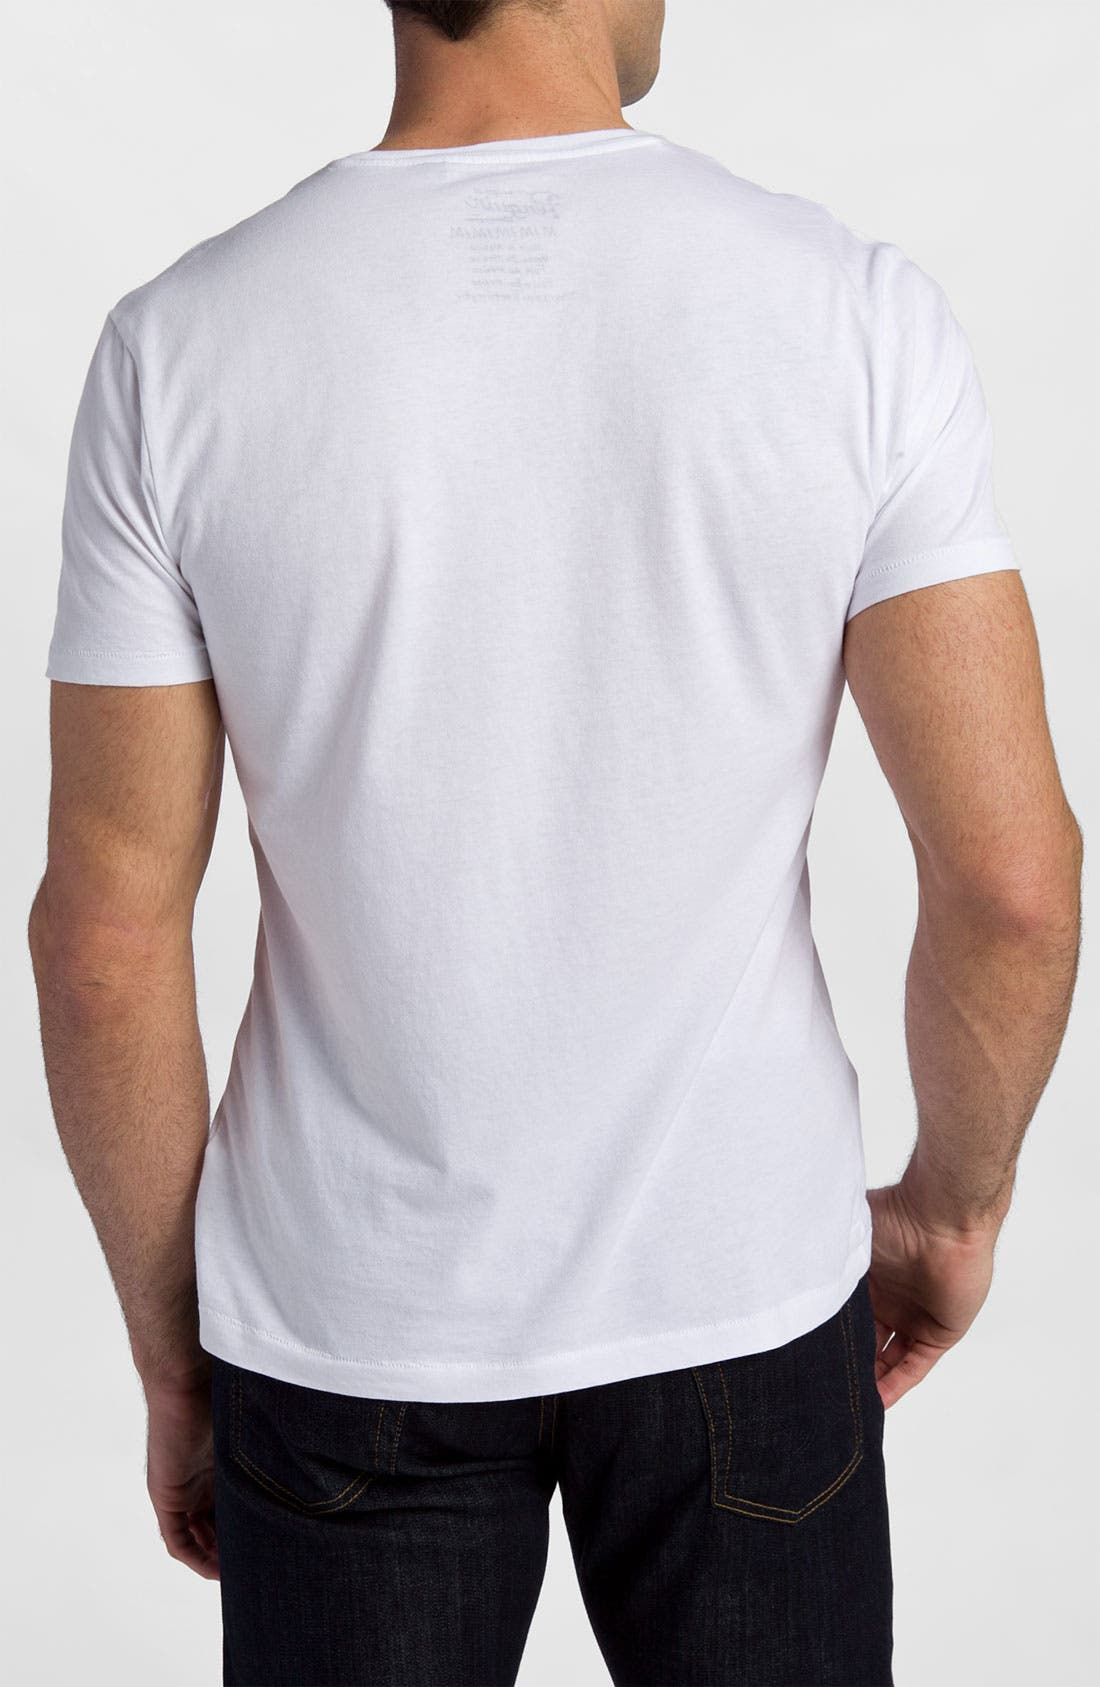 Alternate Image 2  - Original Penguin 'Script' V-Neck Graphic T-Shirt